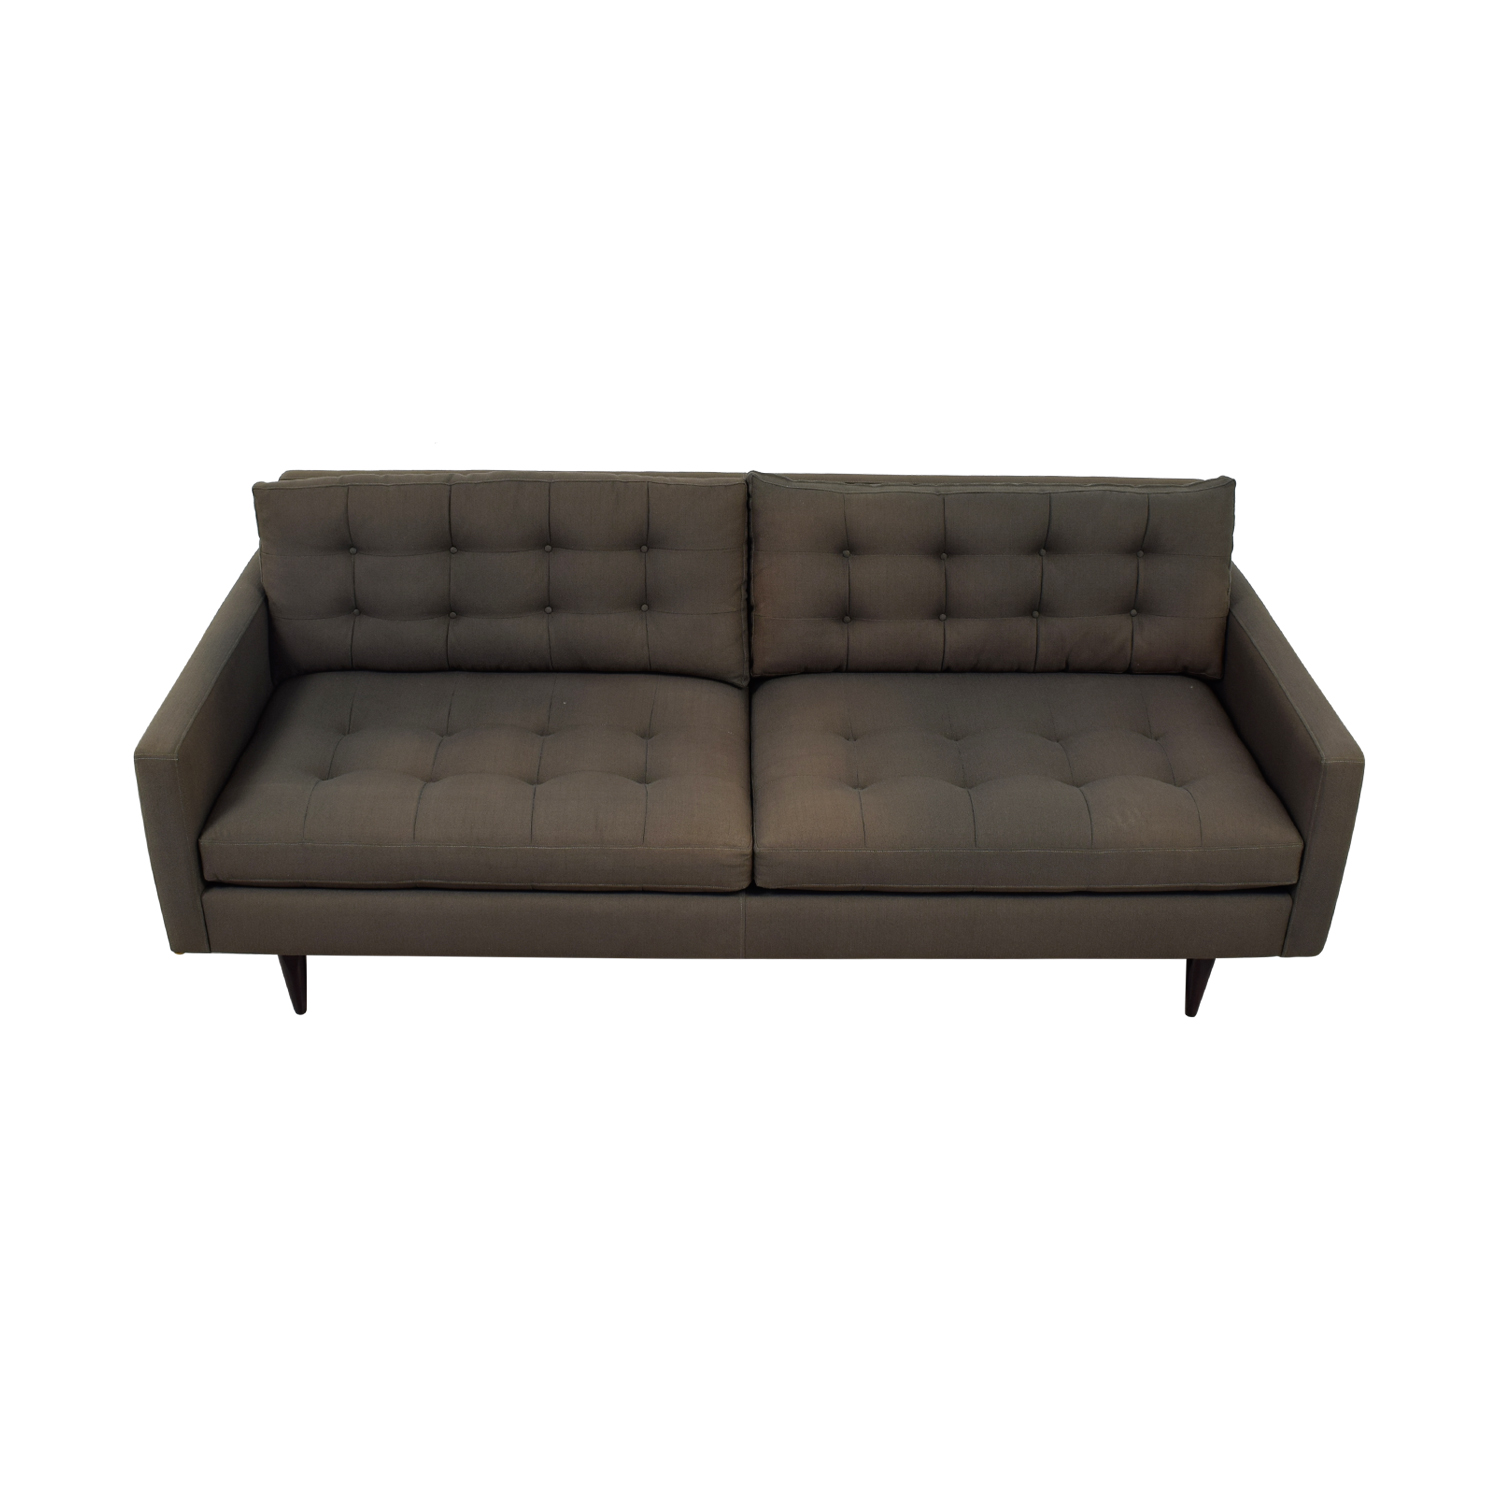 Crate & Barrel Petrie Grey Tufted Two-Cushion Sofa sale